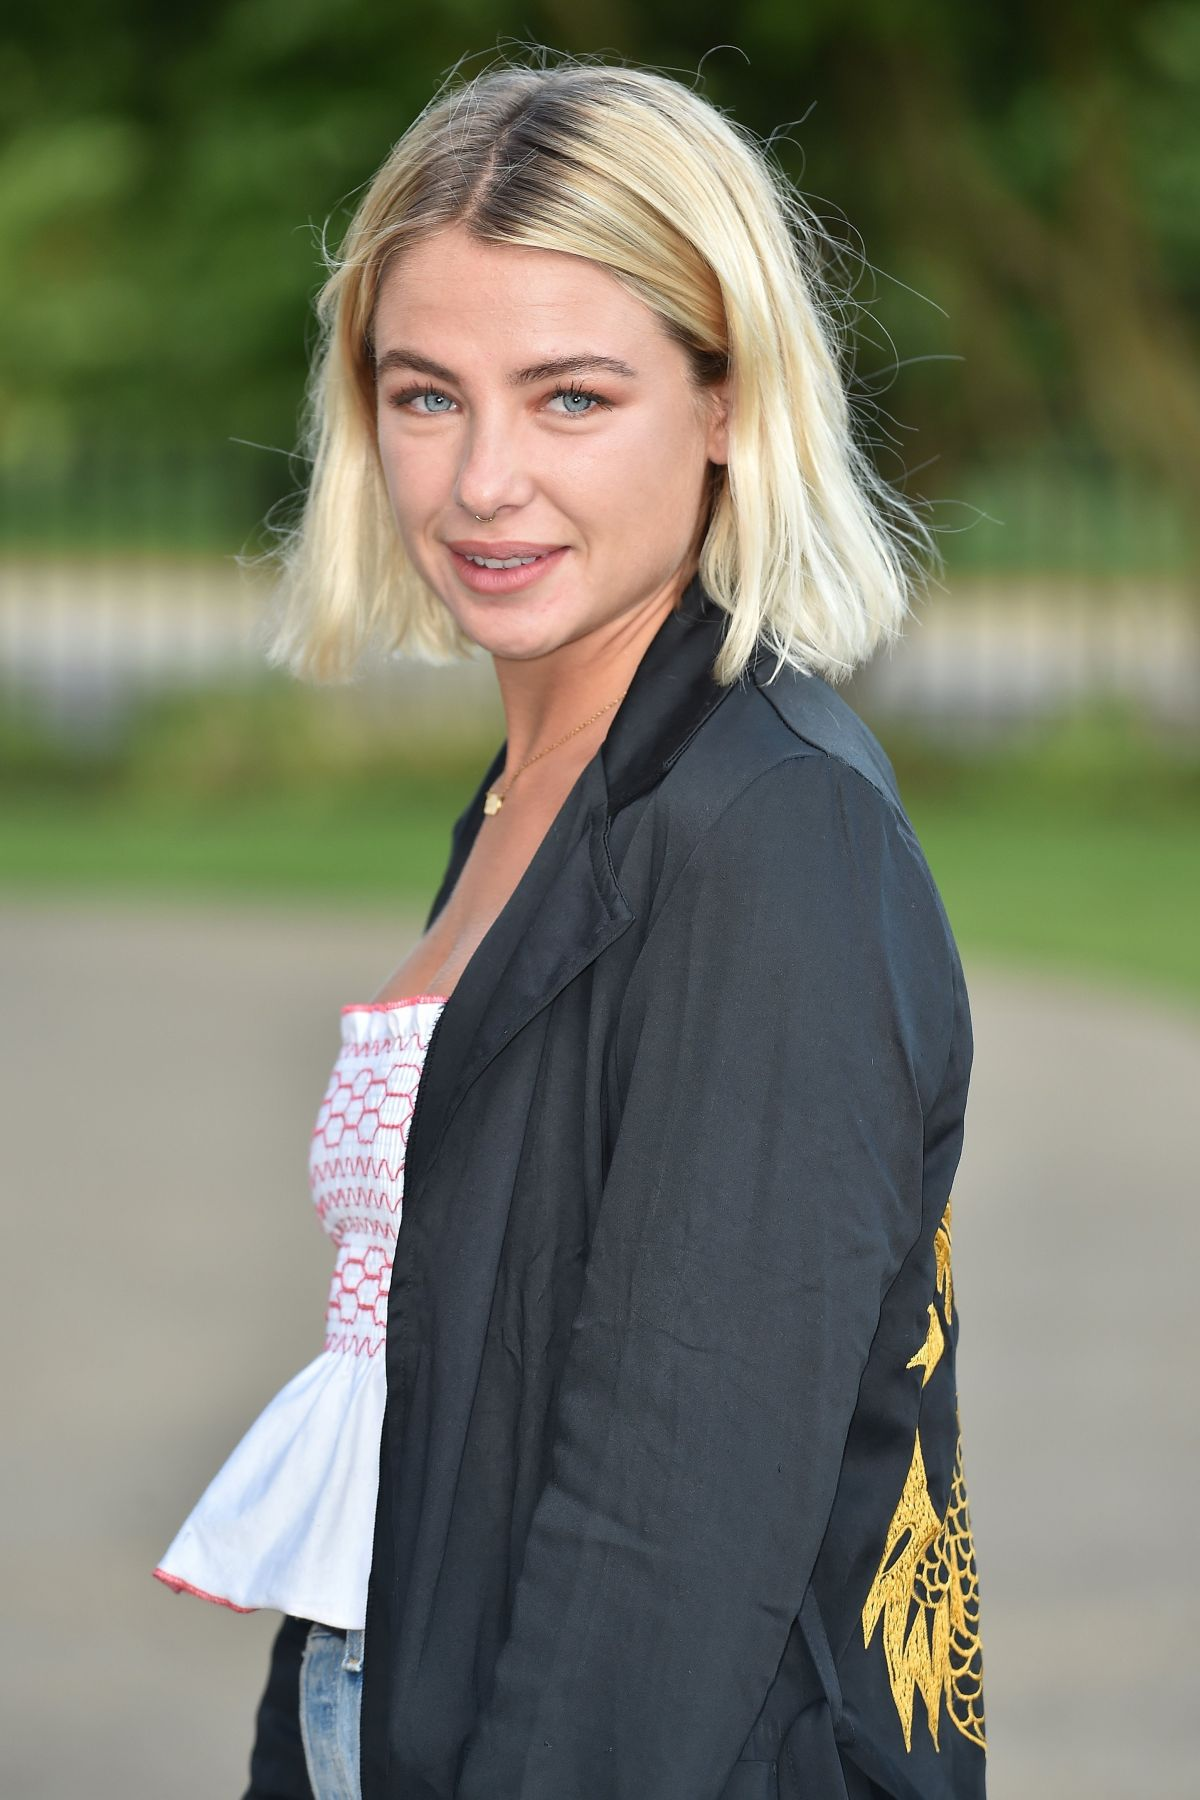 jess woodley - seen attending the liketoknowit app launch party at the the magazine restaurant in hyde park, london - june 15, 2017 - fórum - starity.hu